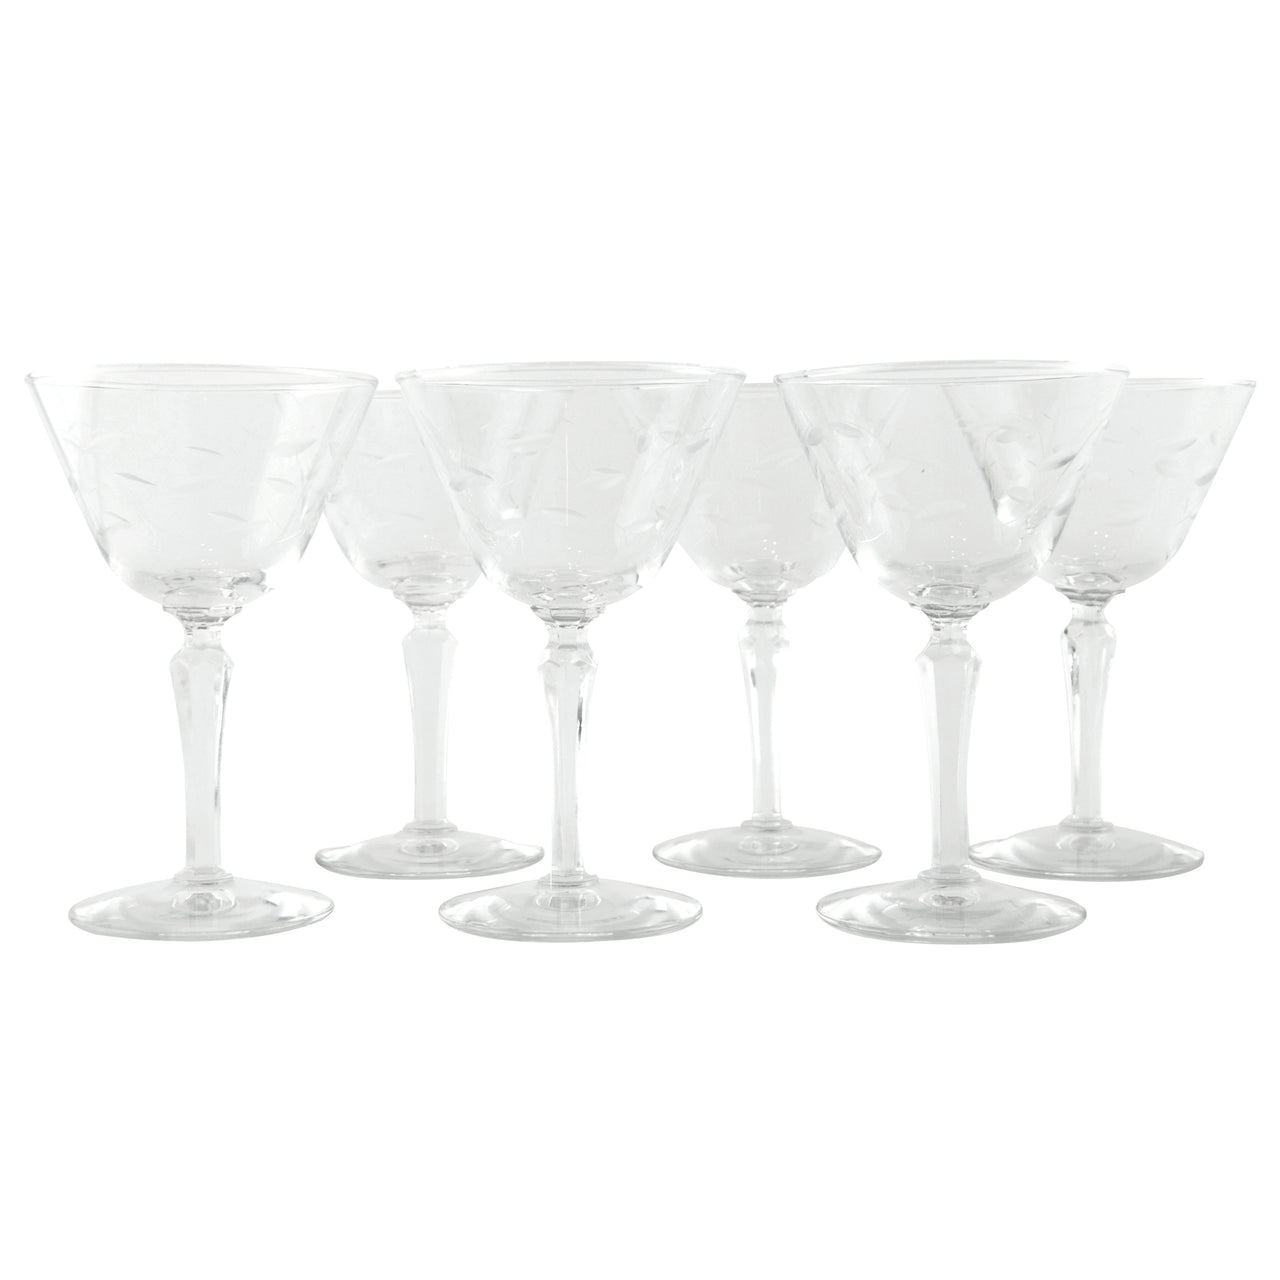 Cut Oval Manhattan Cocktail Glasses | The Hour Shop Vintage